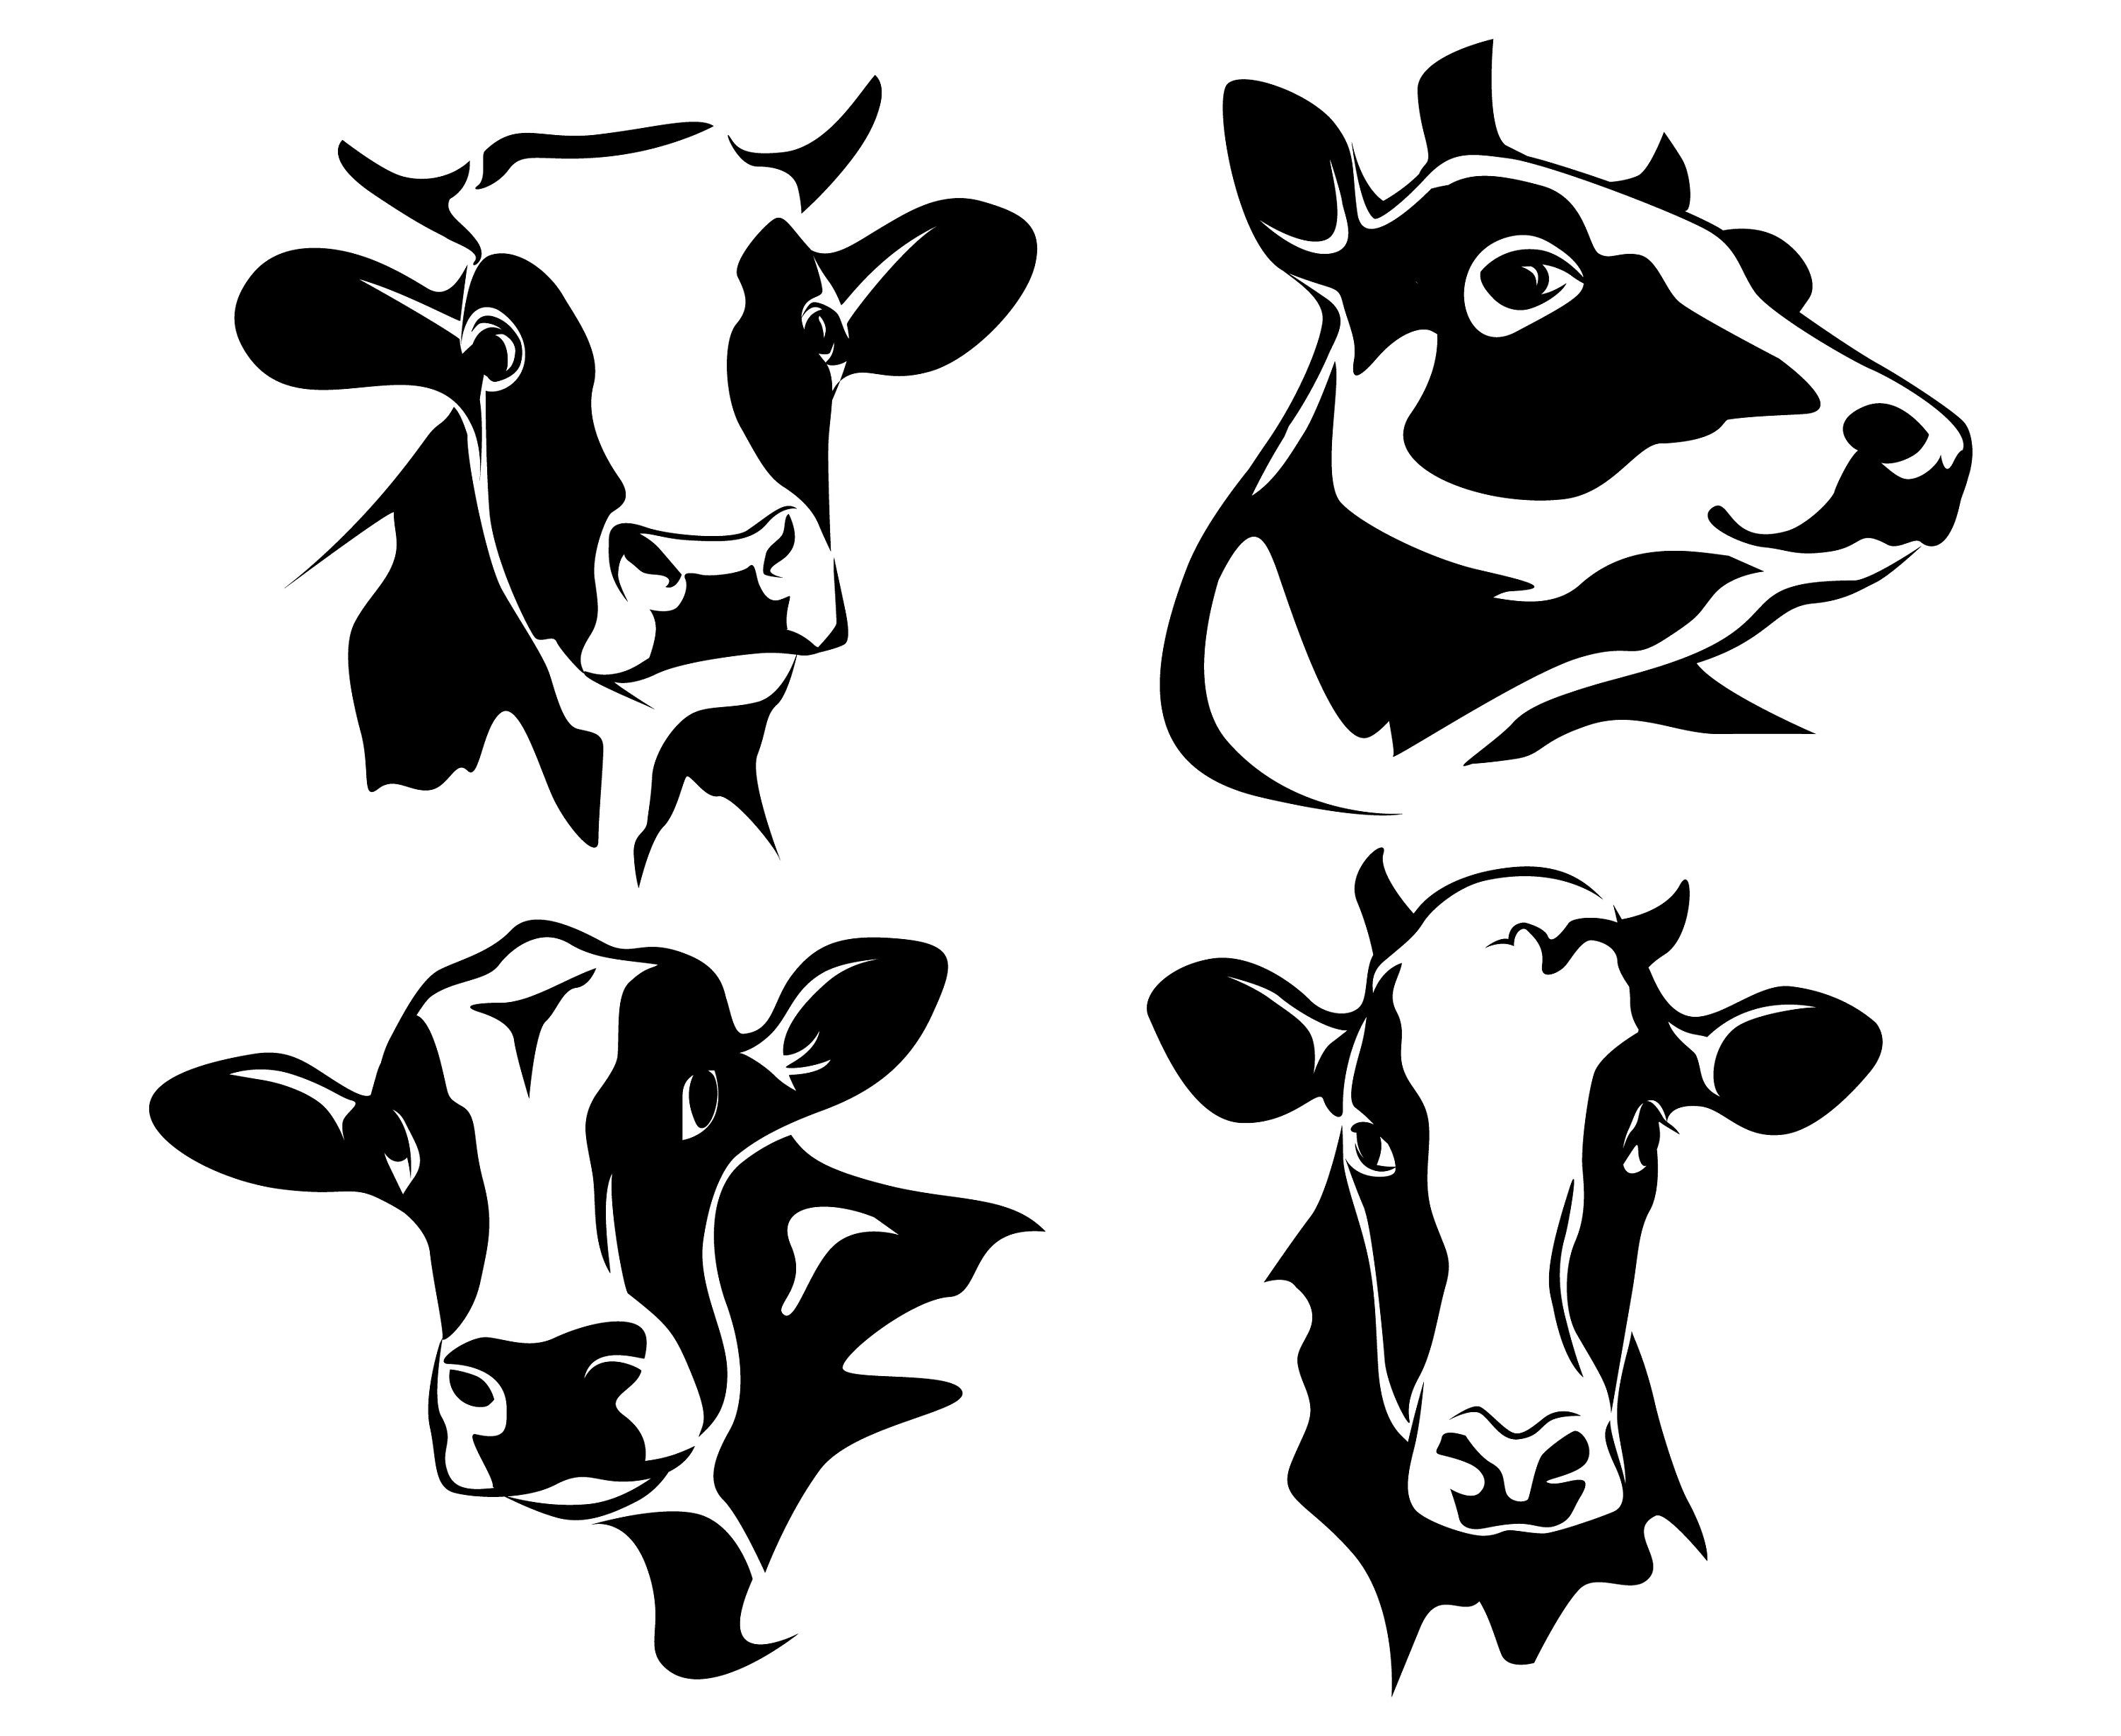 Cow, Cow head, Dairy cow, Milk cow, Silhouette,SVG